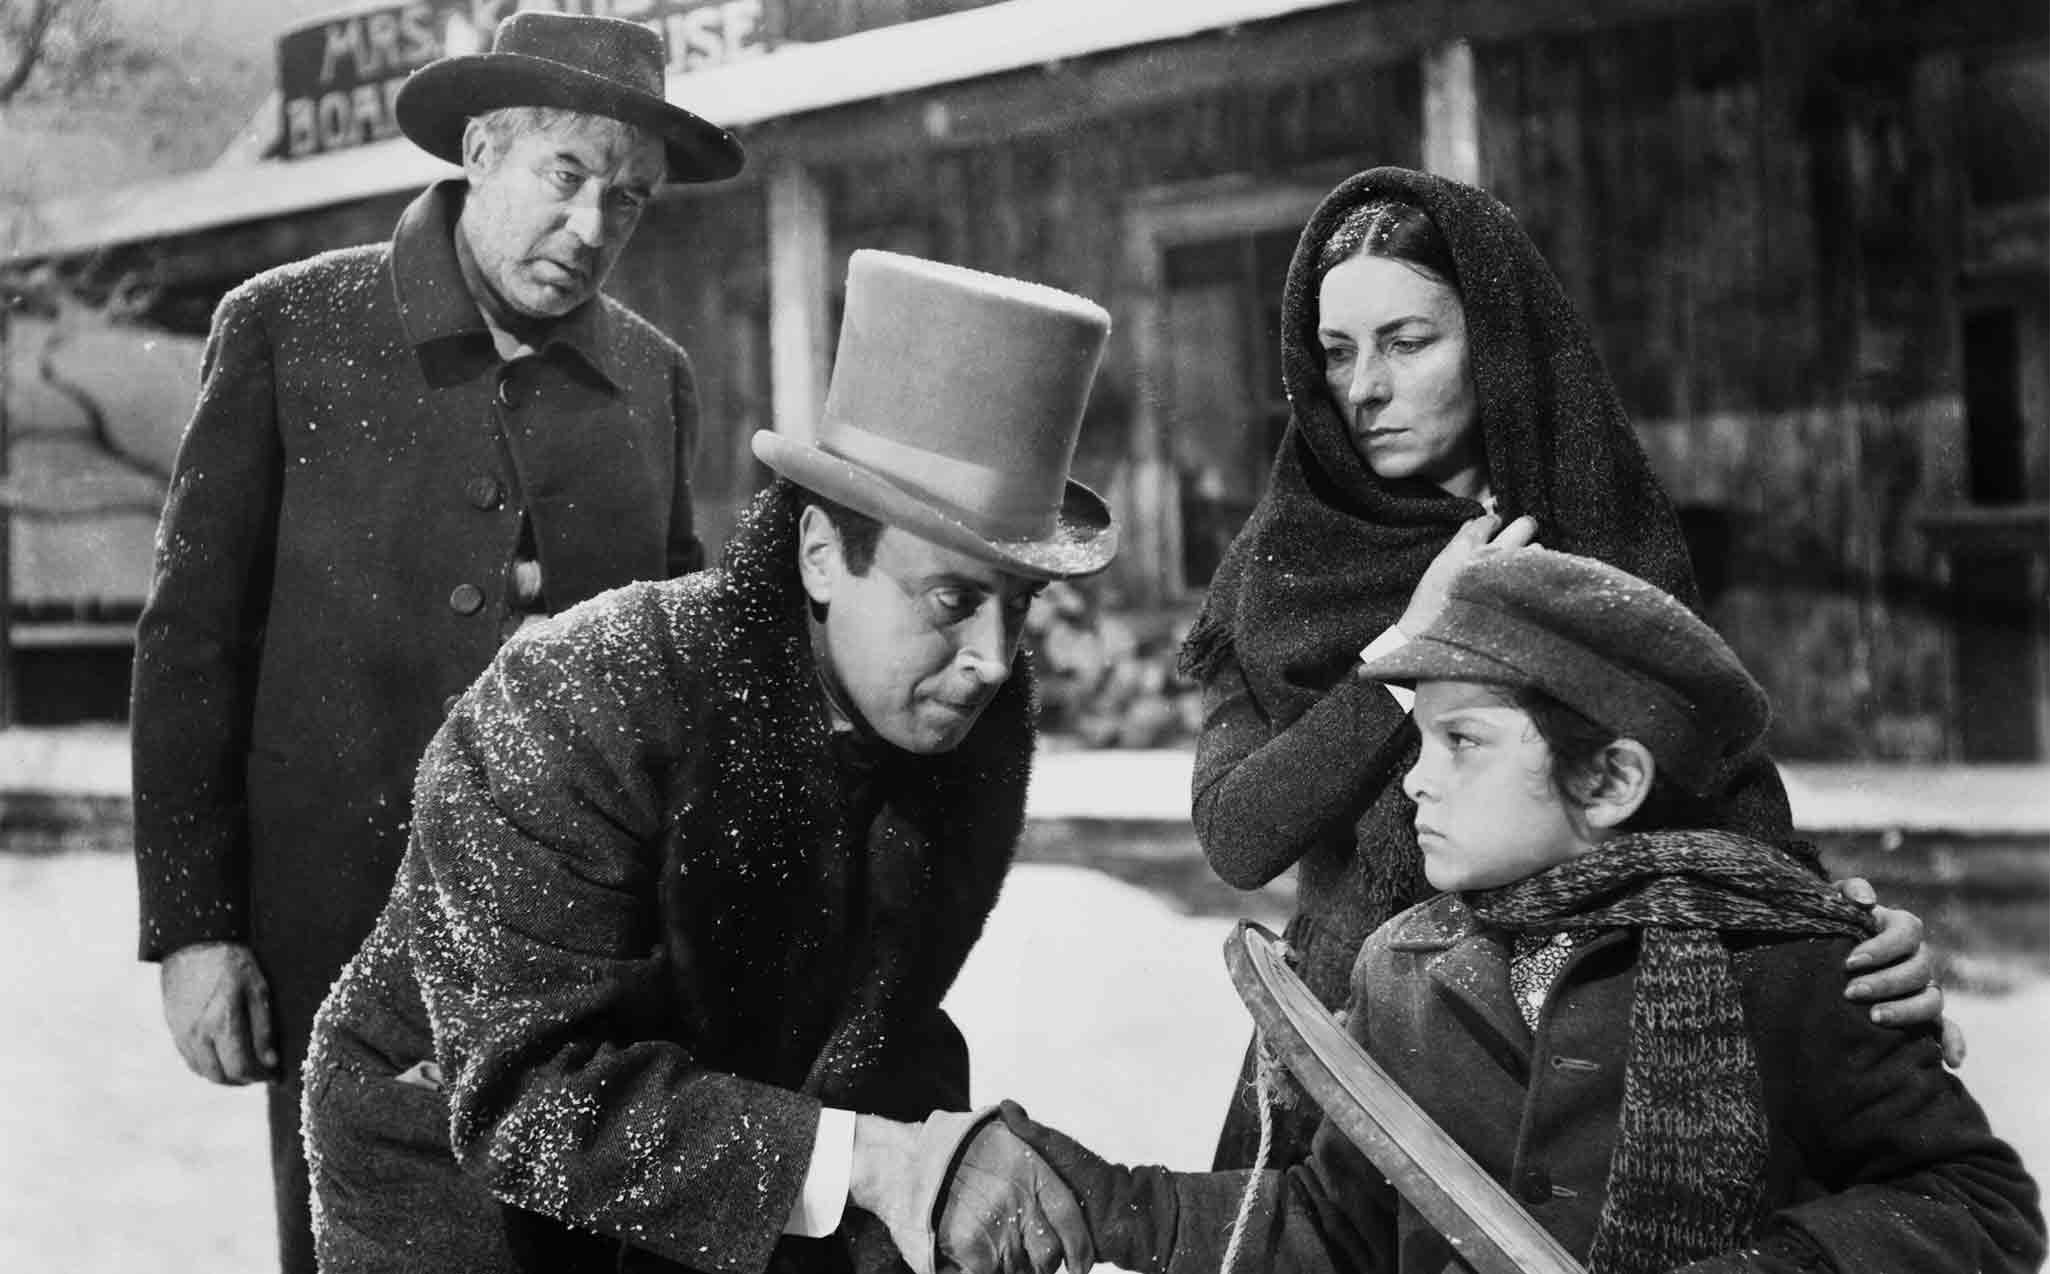 (From left) Harry Shannon, George Coulouris, Agnes Moorhead, Buddy Swan